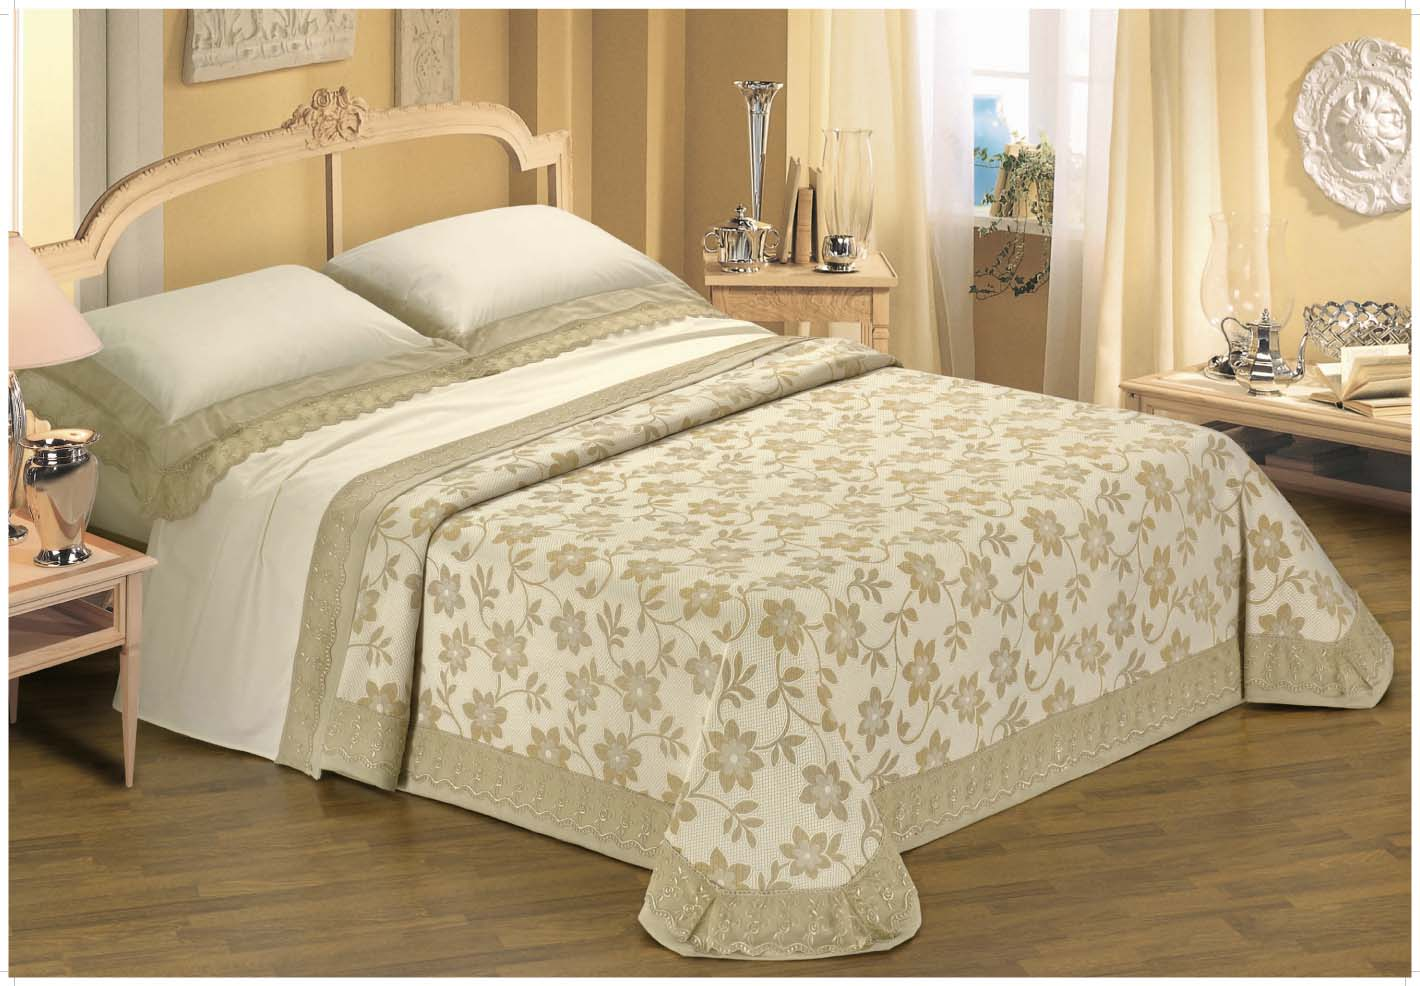 Bed sheets for wedding - Bed Linen Sheet Set